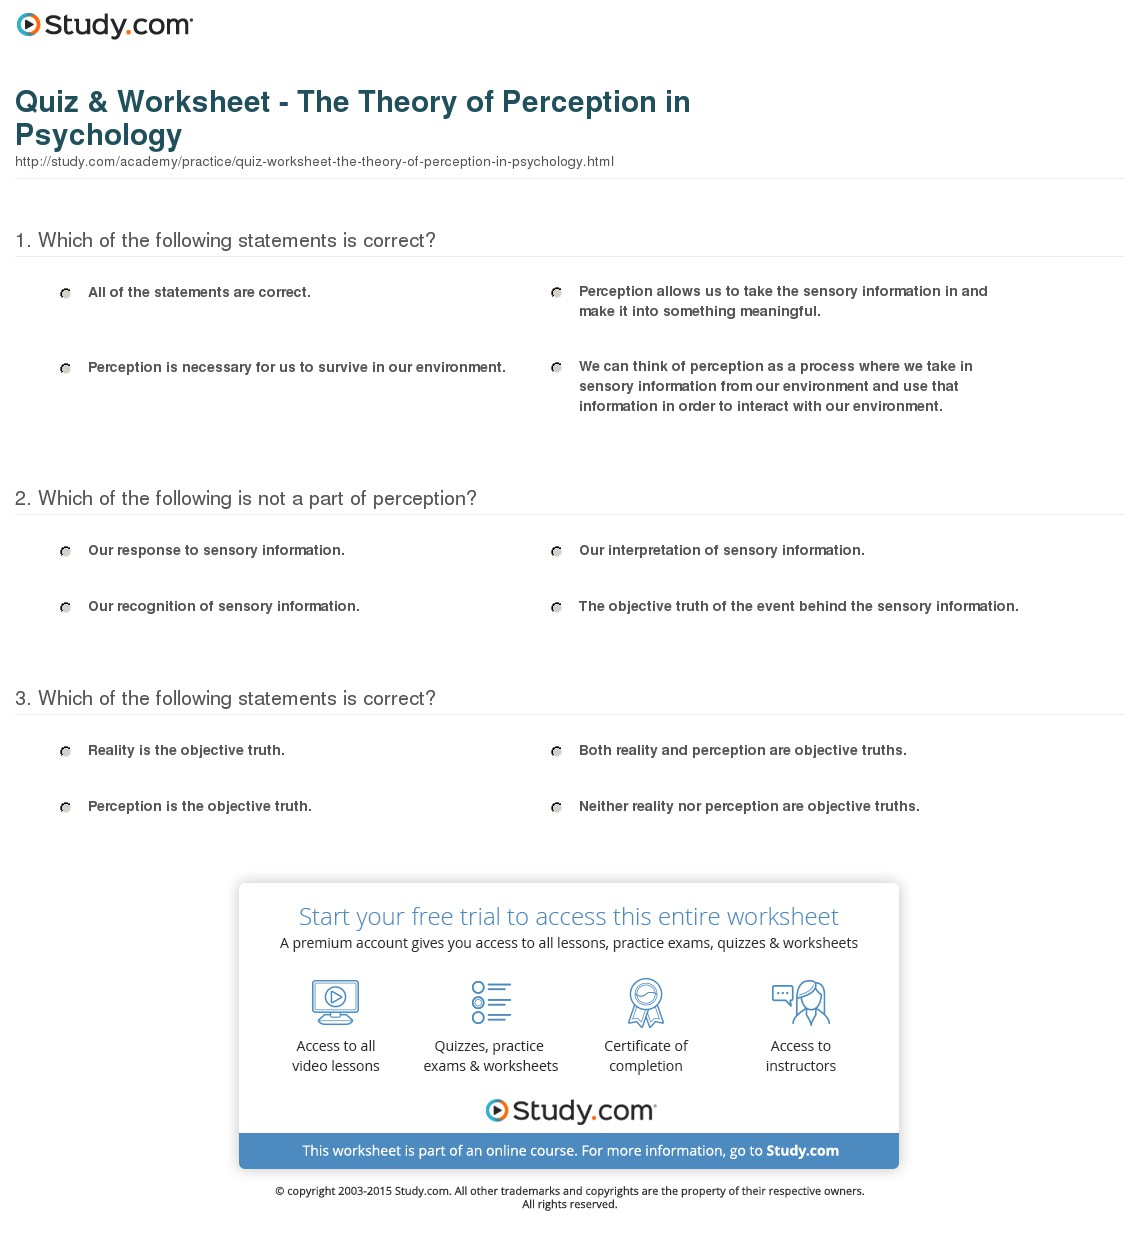 003 Perception Essay Quiz Worksheet The Theory Of In Psychology Formidable Questions Vs Reality Topics Sensation And Full